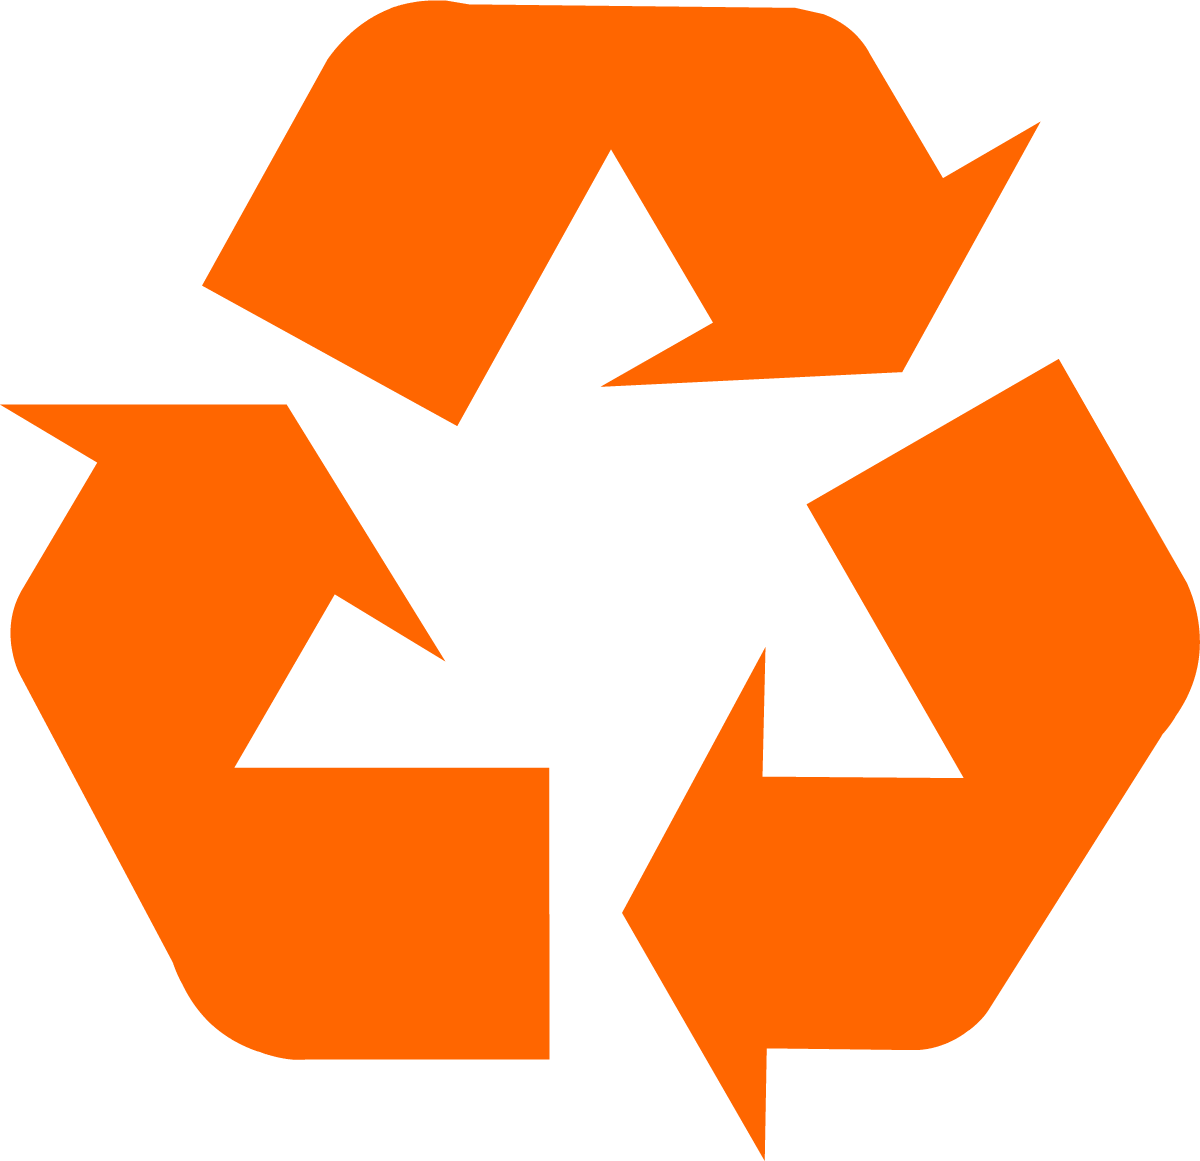 Recycle Bin Symbol Recycling Download HD PNG PNG Image